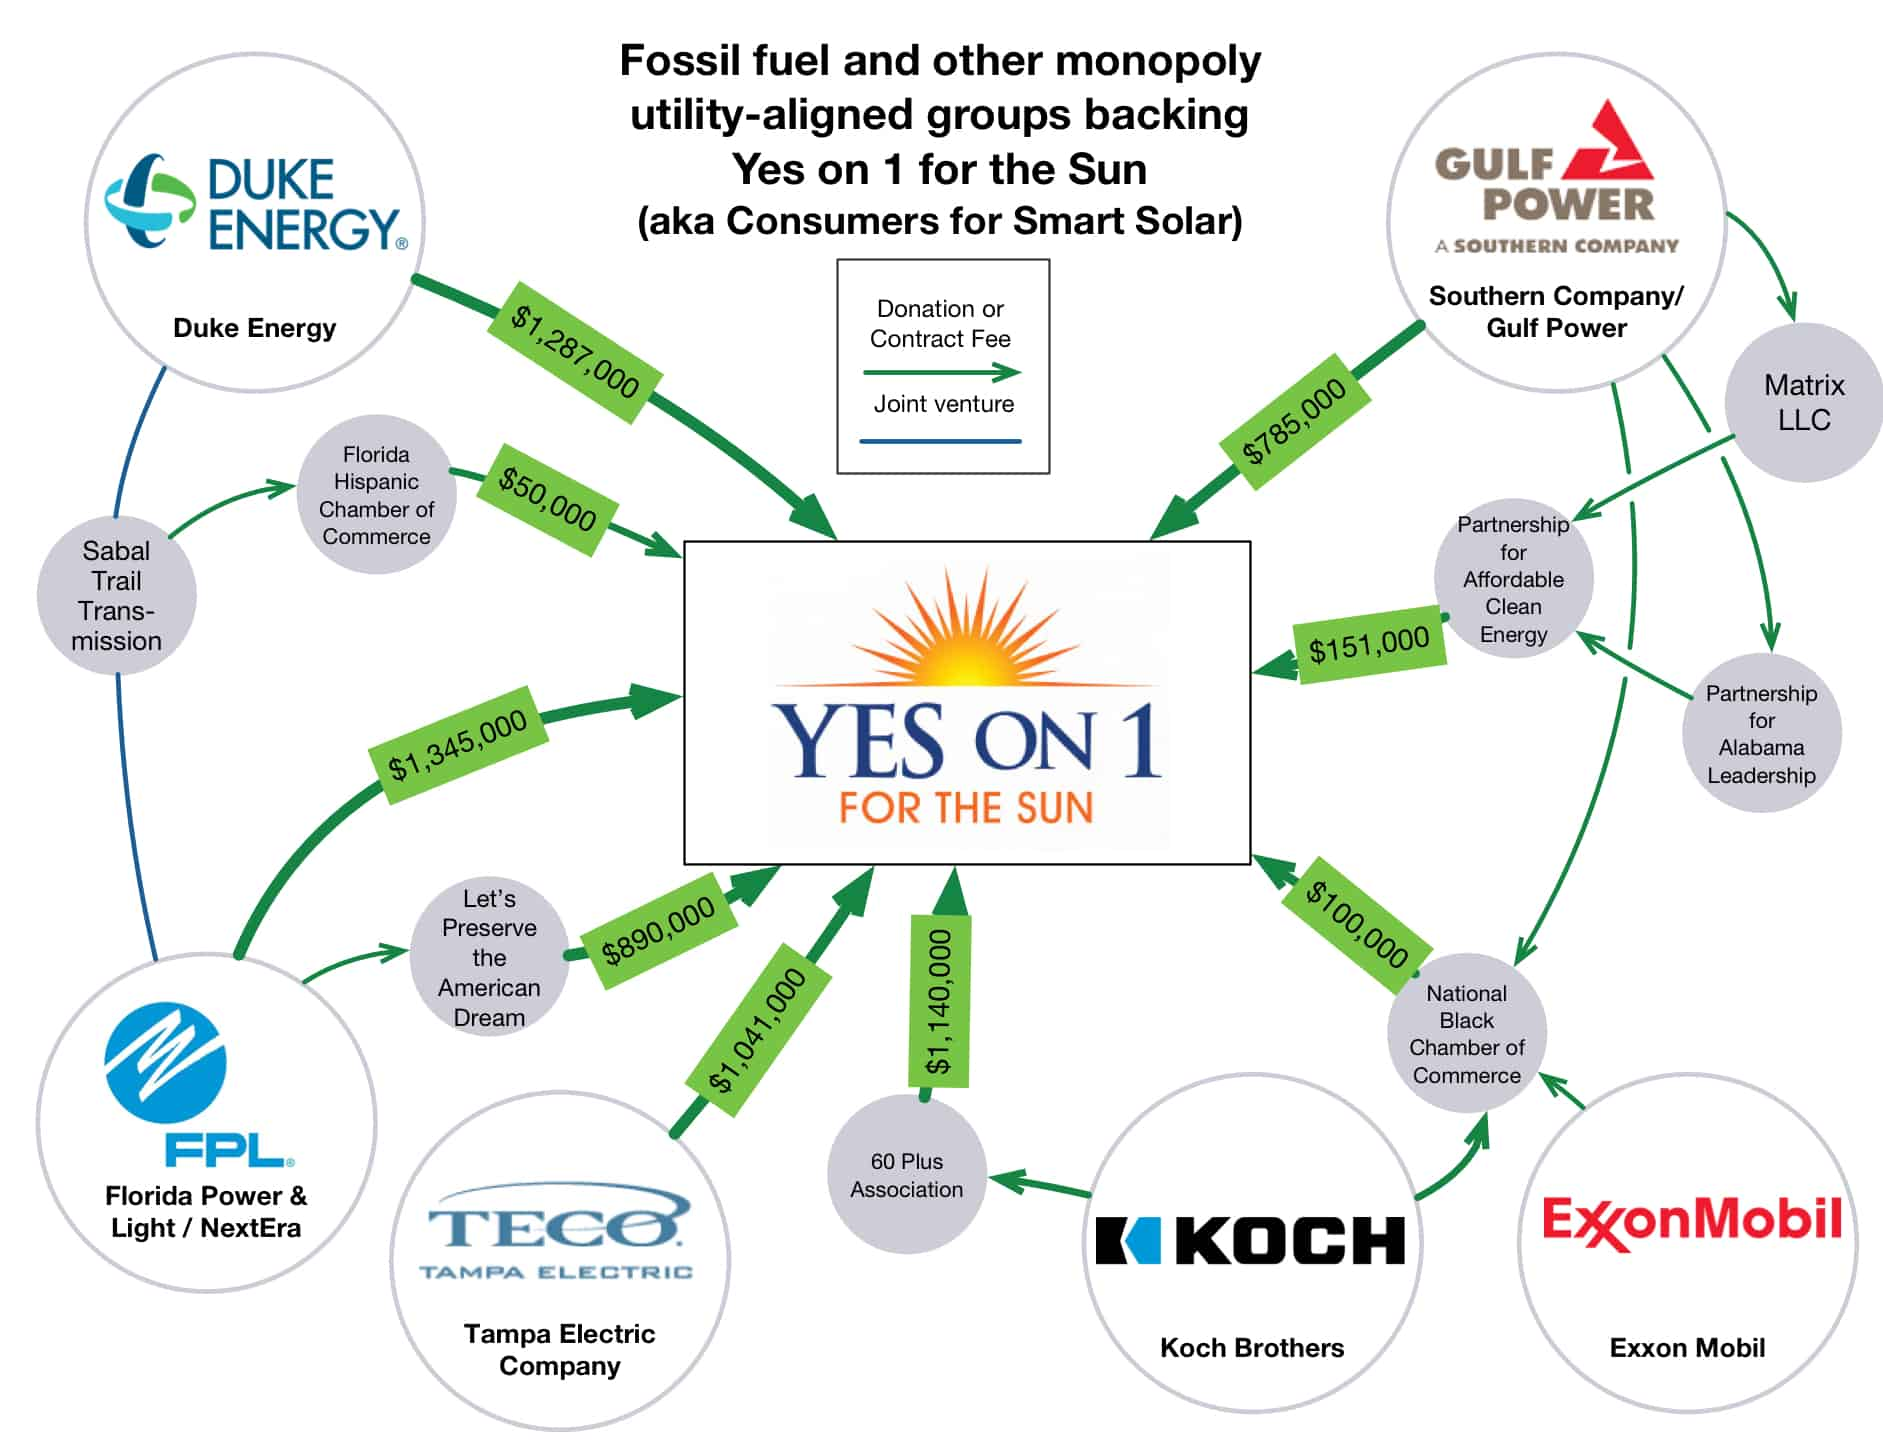 Yes-on-1-for-the-sun-Consumers-for-Smart-Solar-April-2016